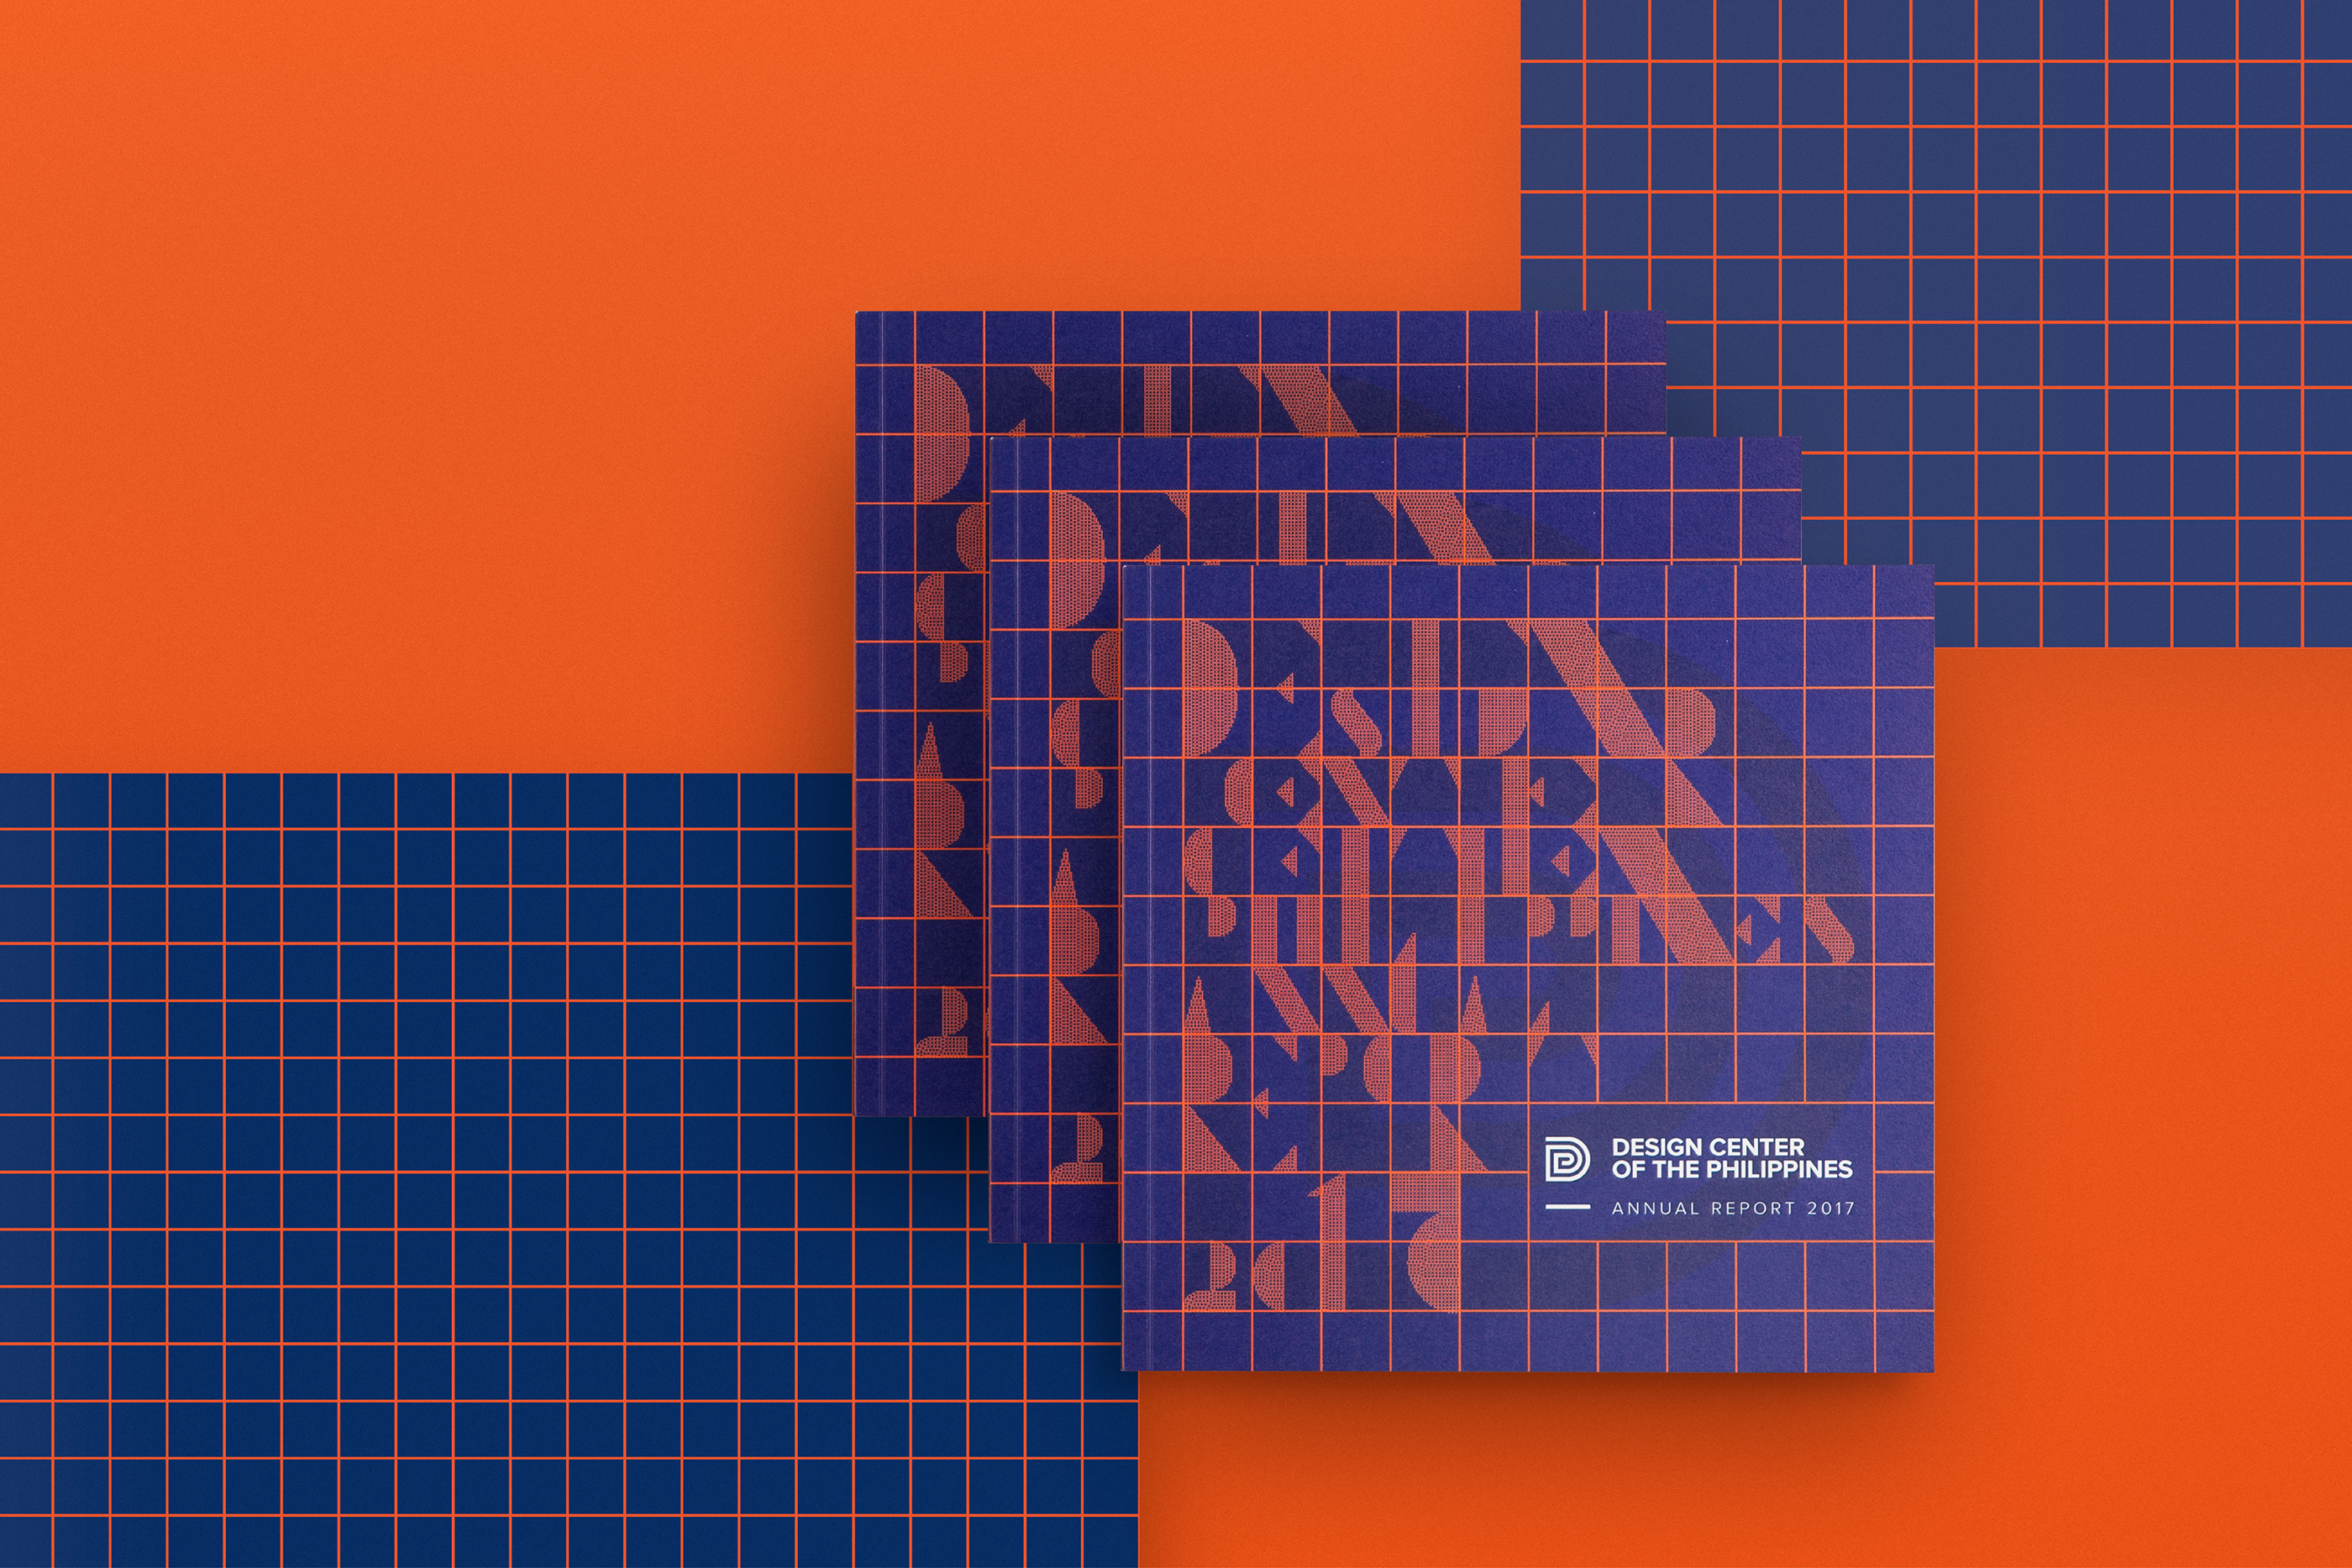 Design Center of the Philippines Annual Report 2017 on